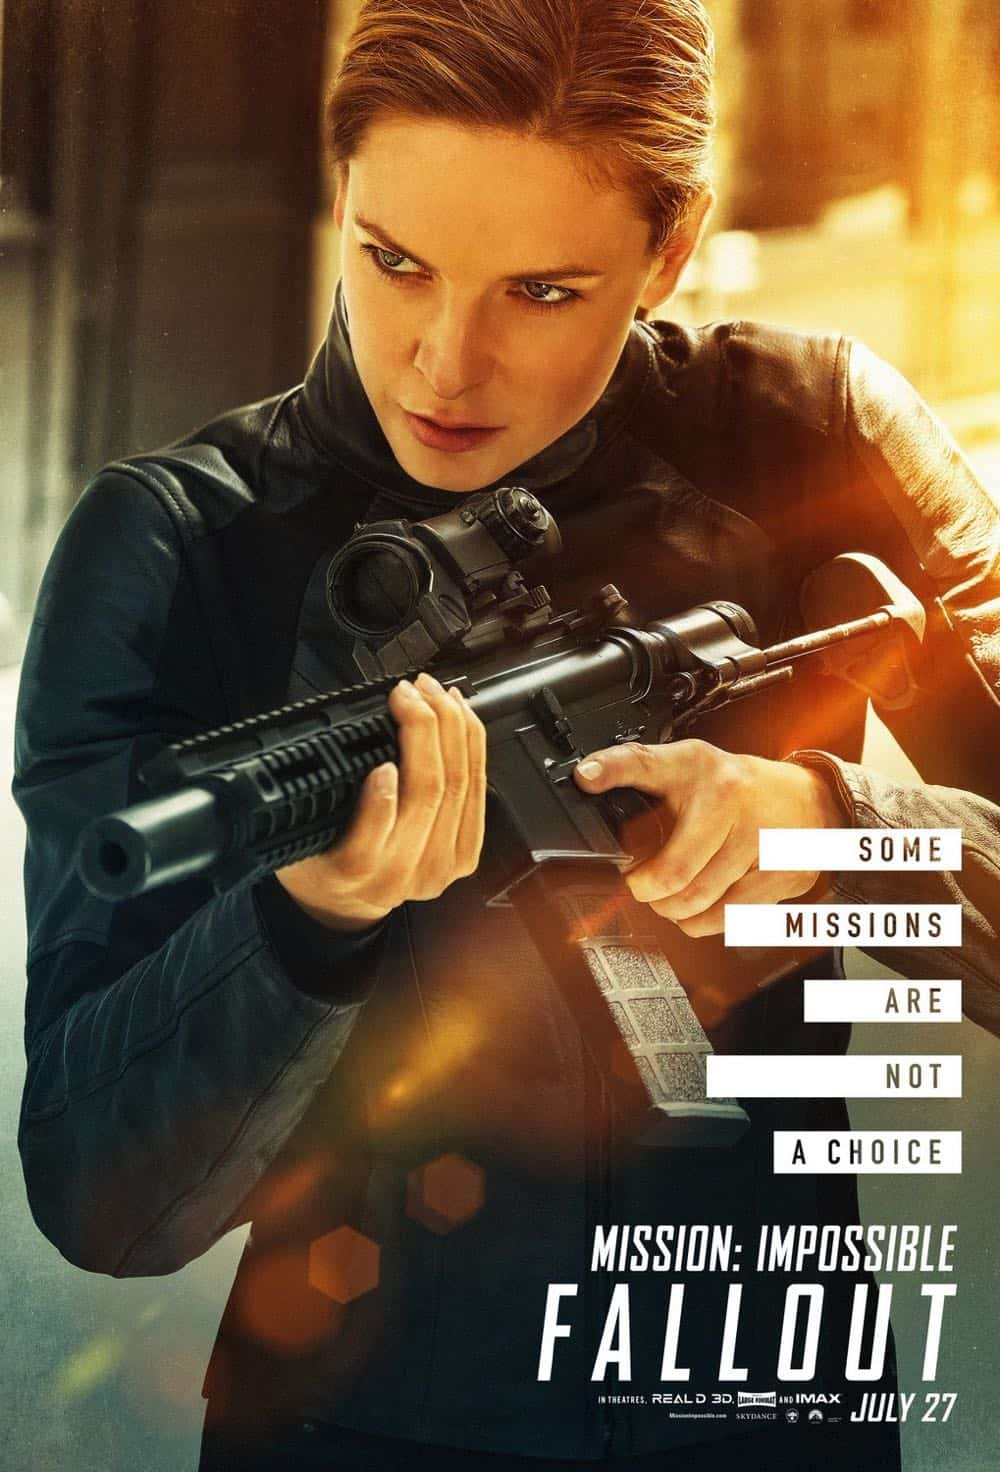 Mission Impossible Fallout Character Movie Poster Rebecca Ferguson